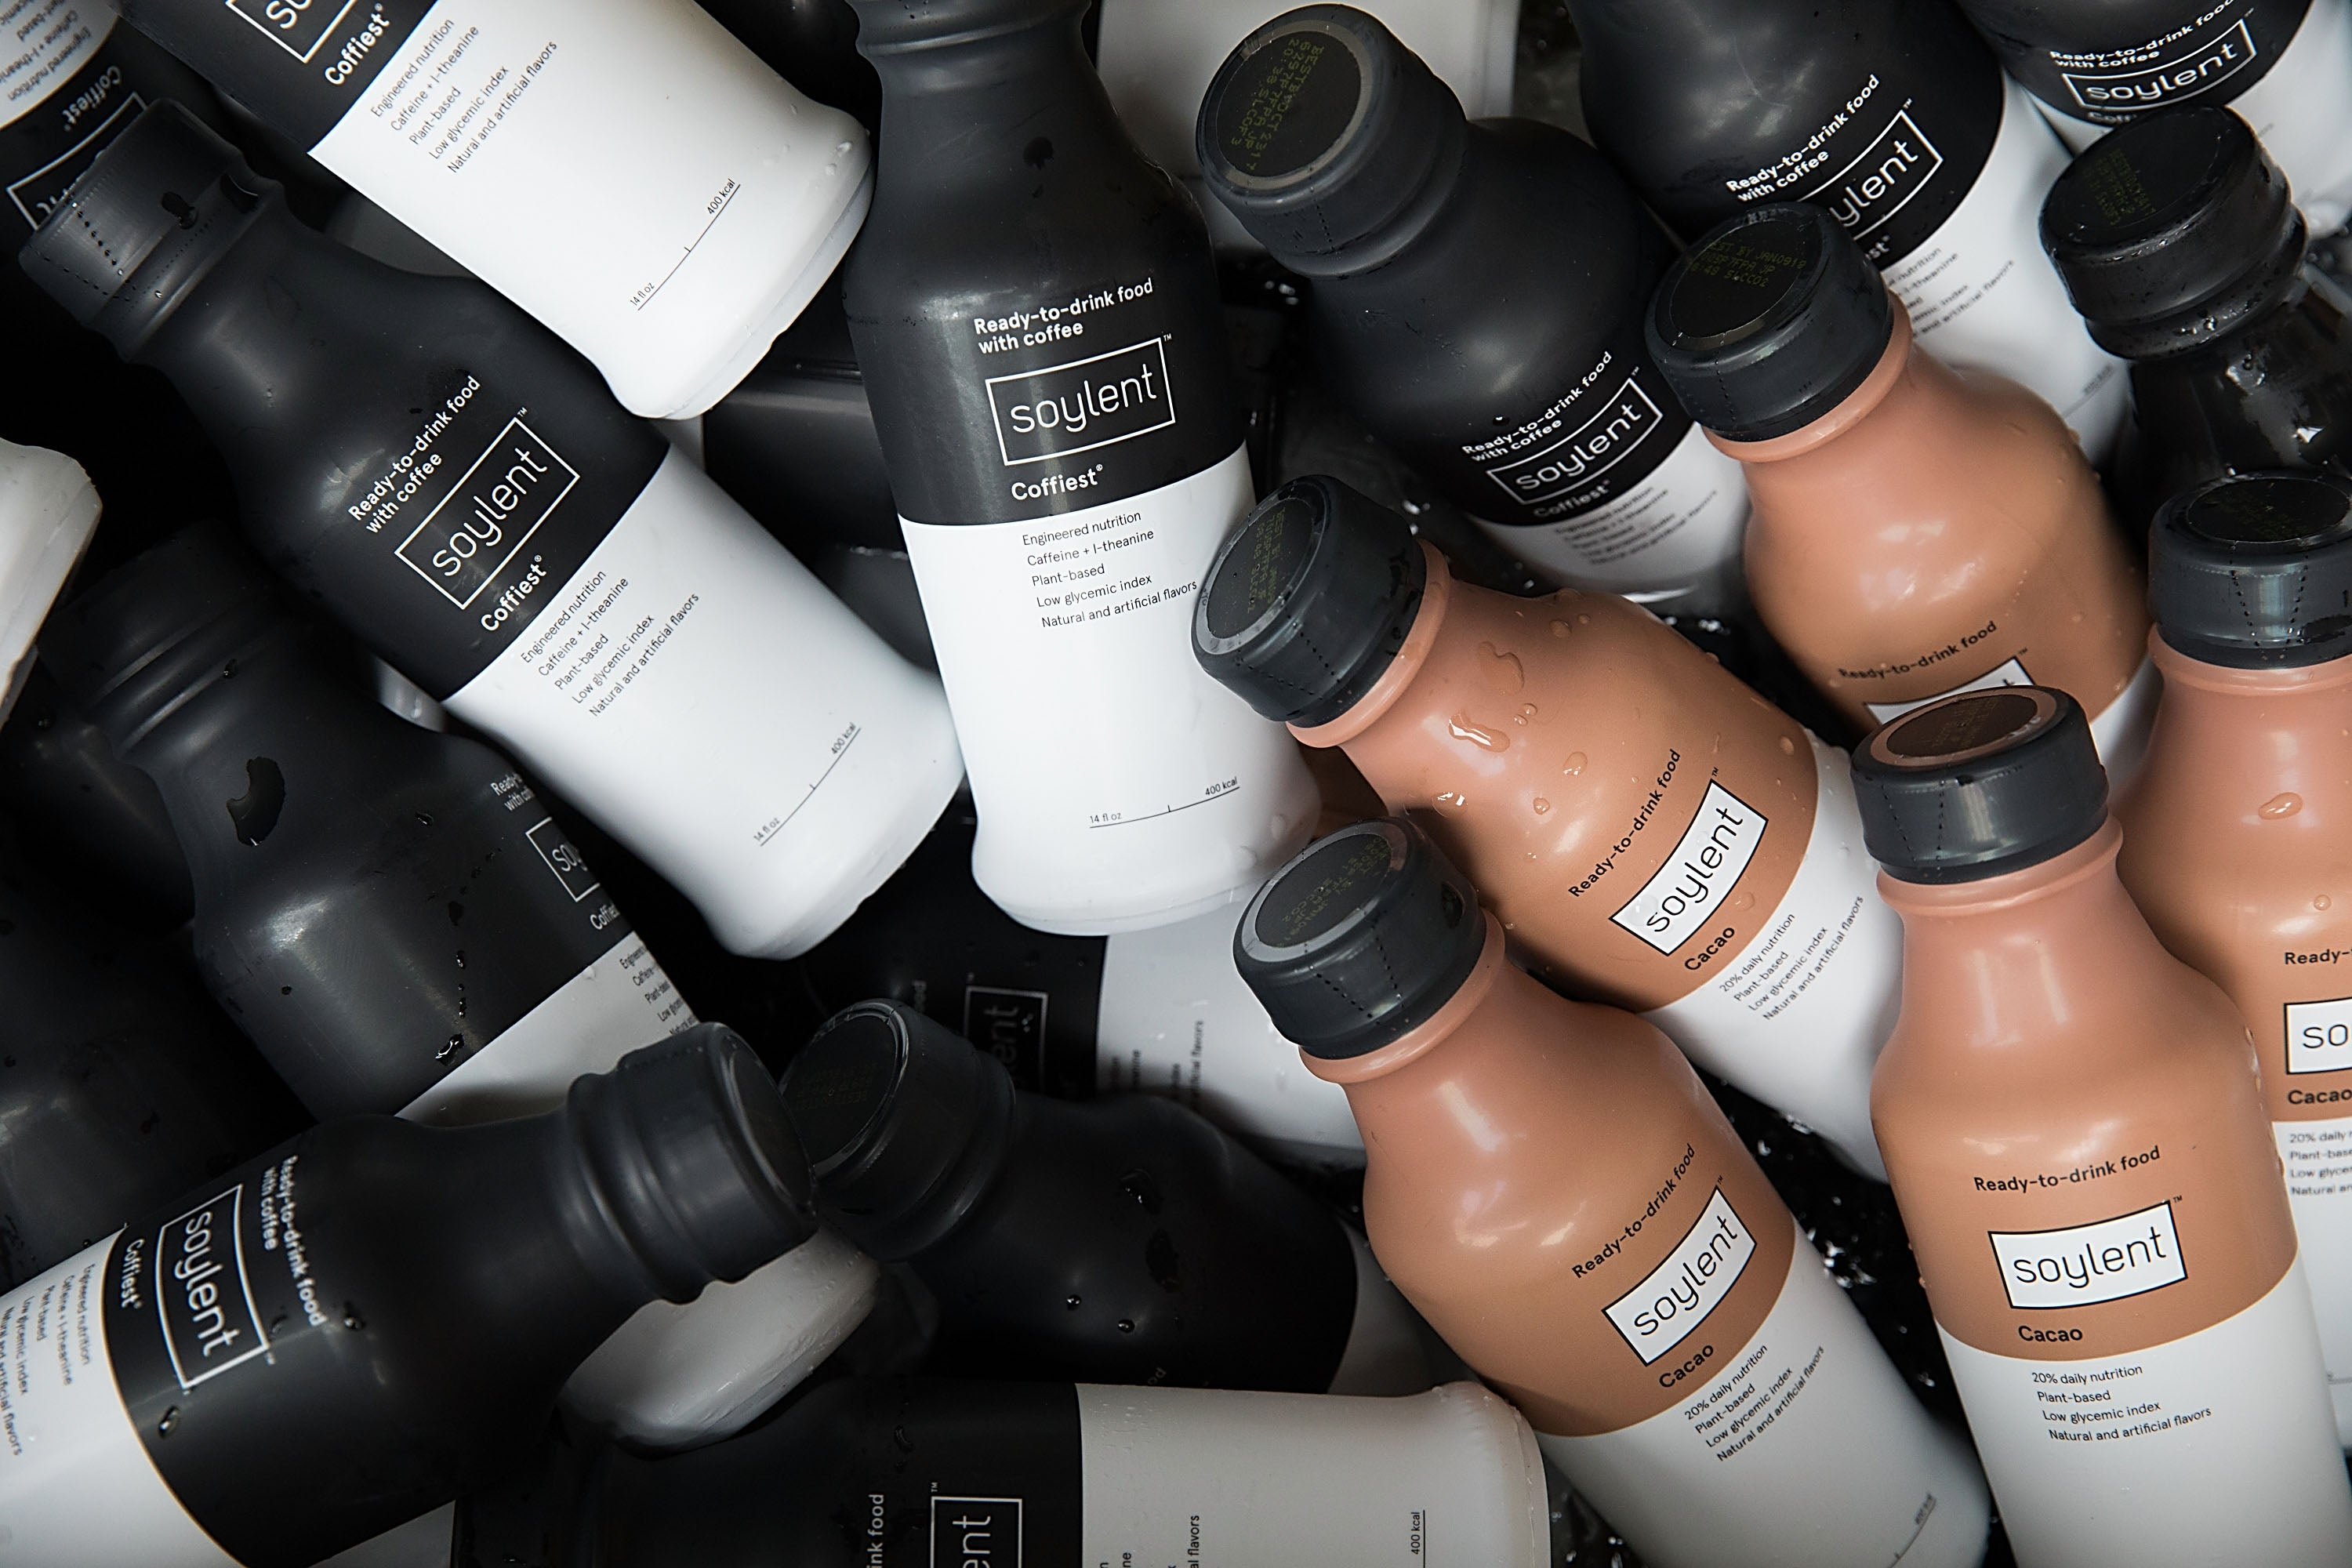 Soylent Banned In Canada